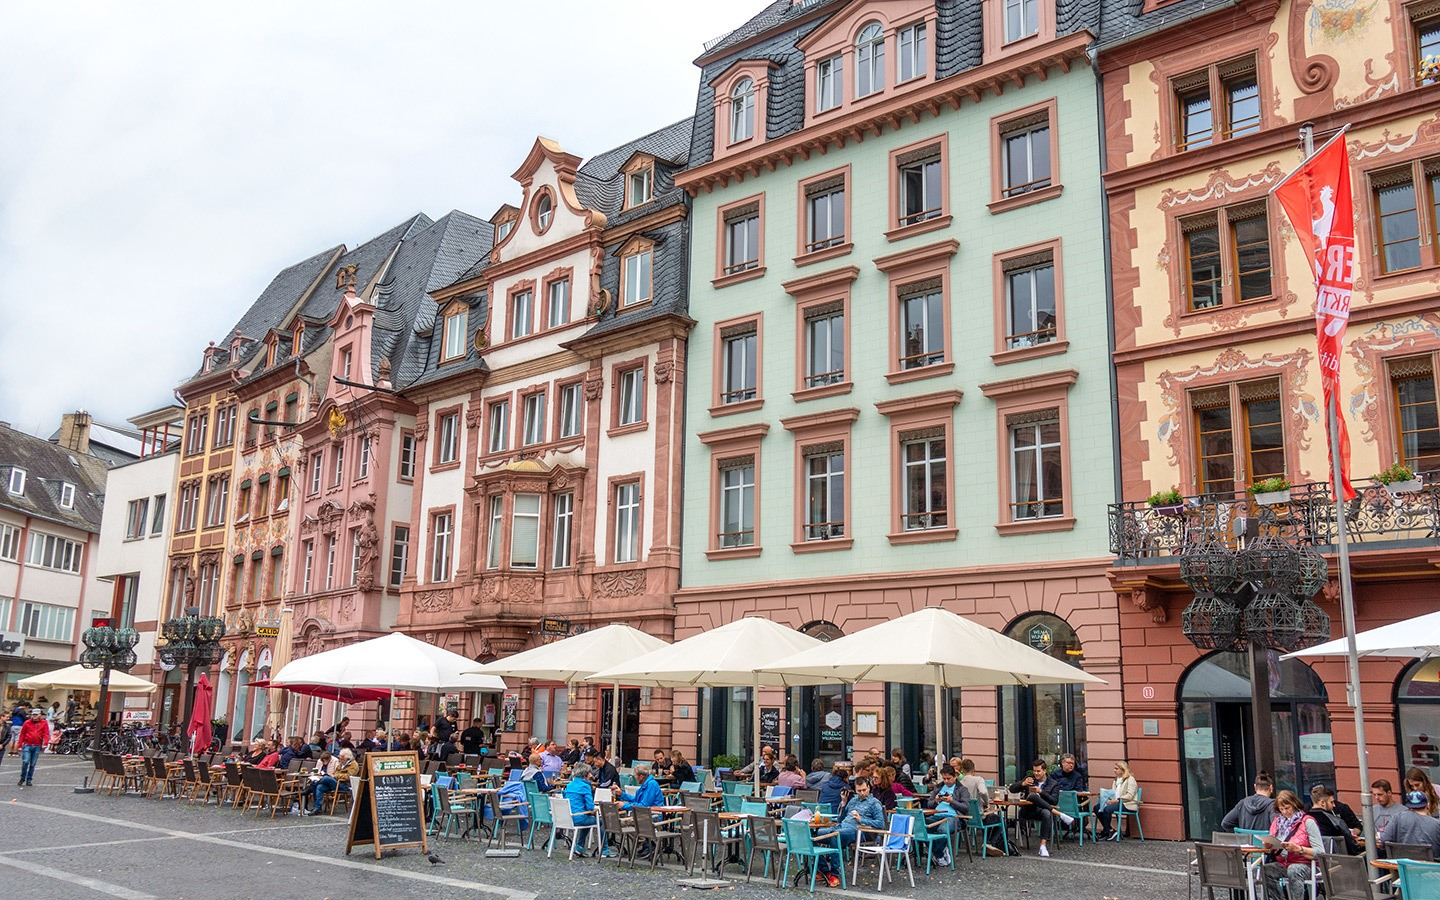 Mainz streets, Germany